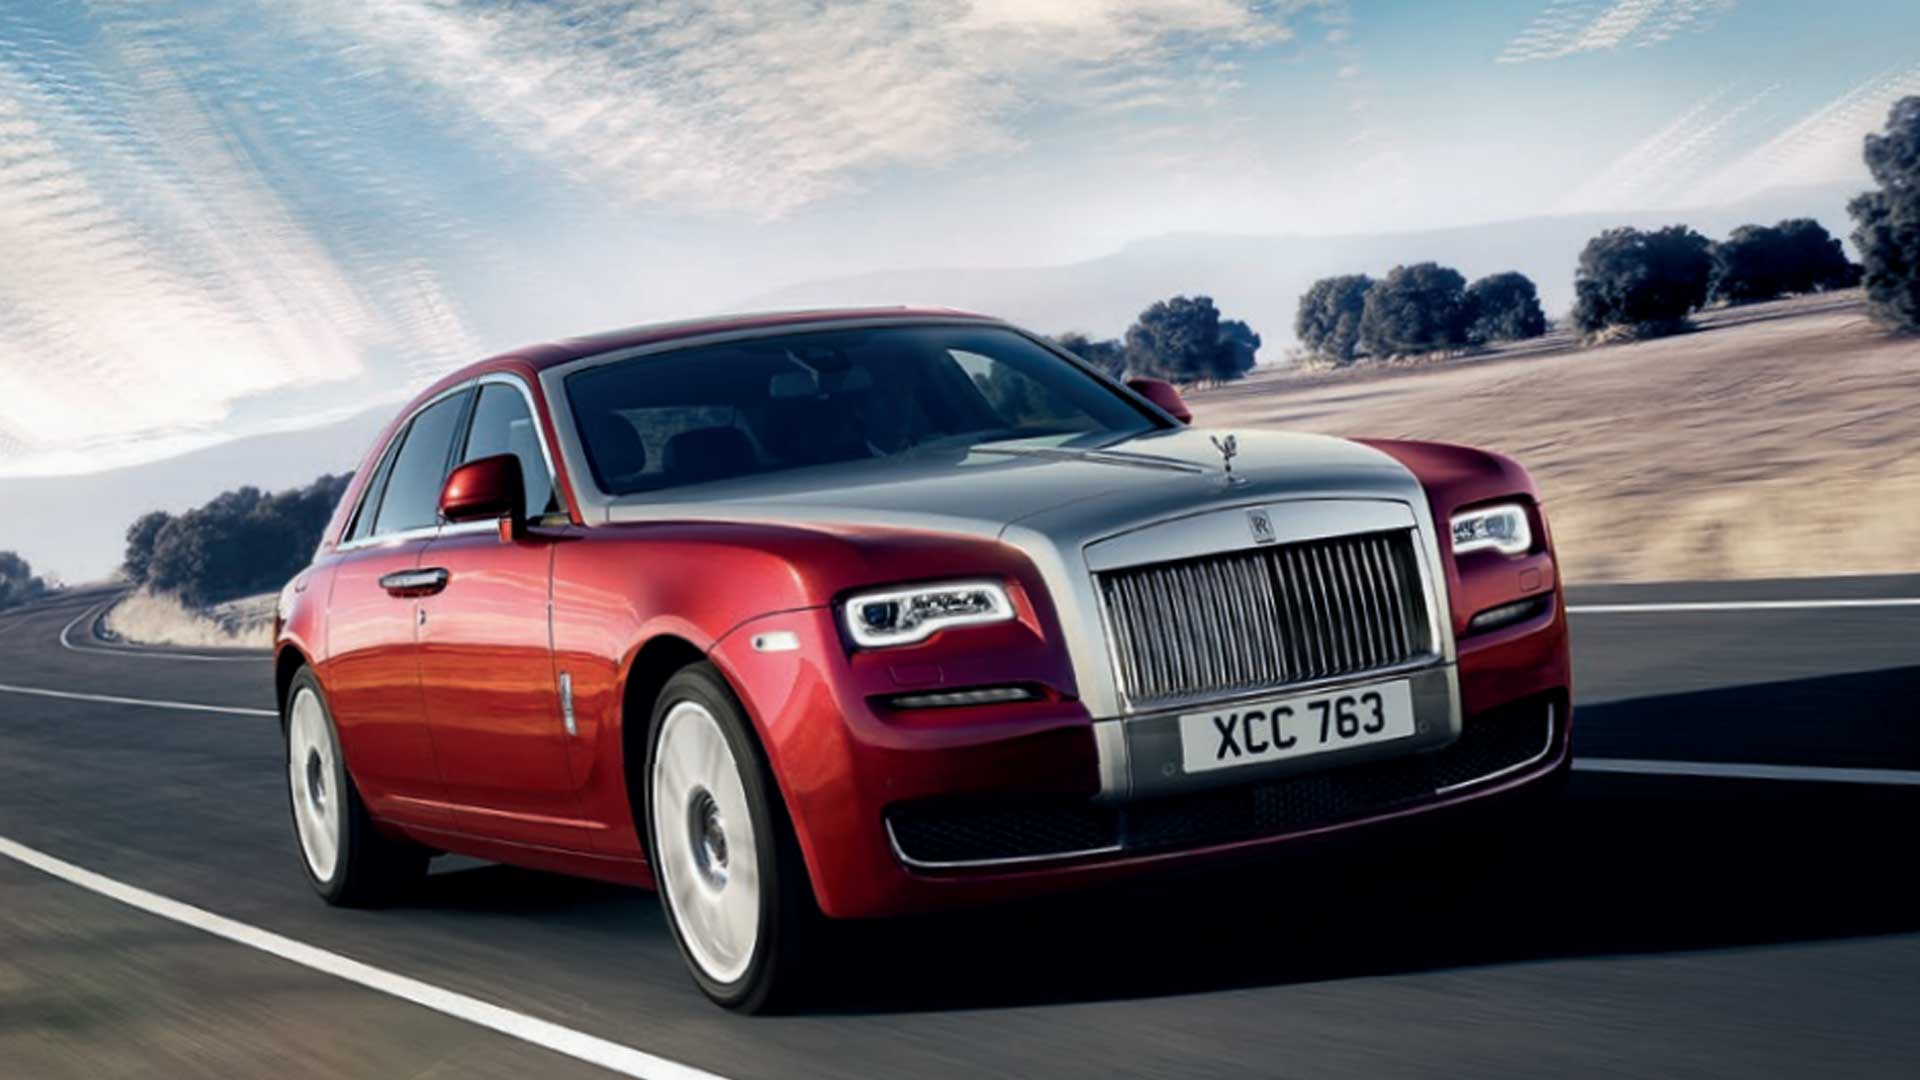 Rolls Royce Ghost Series II 2014 EWB